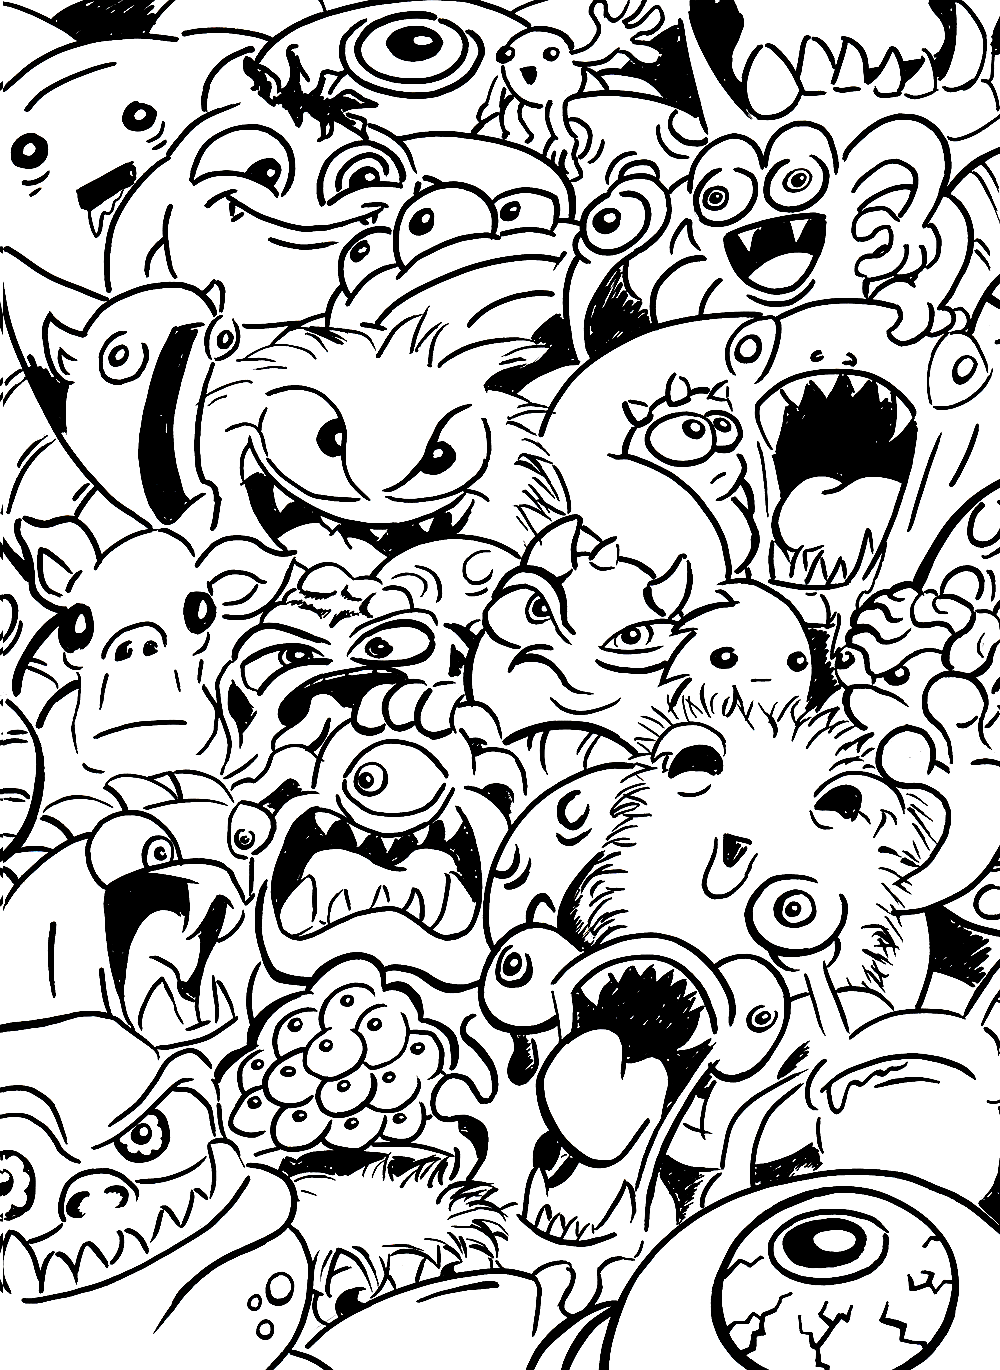 Monsters drawing sketch illustration